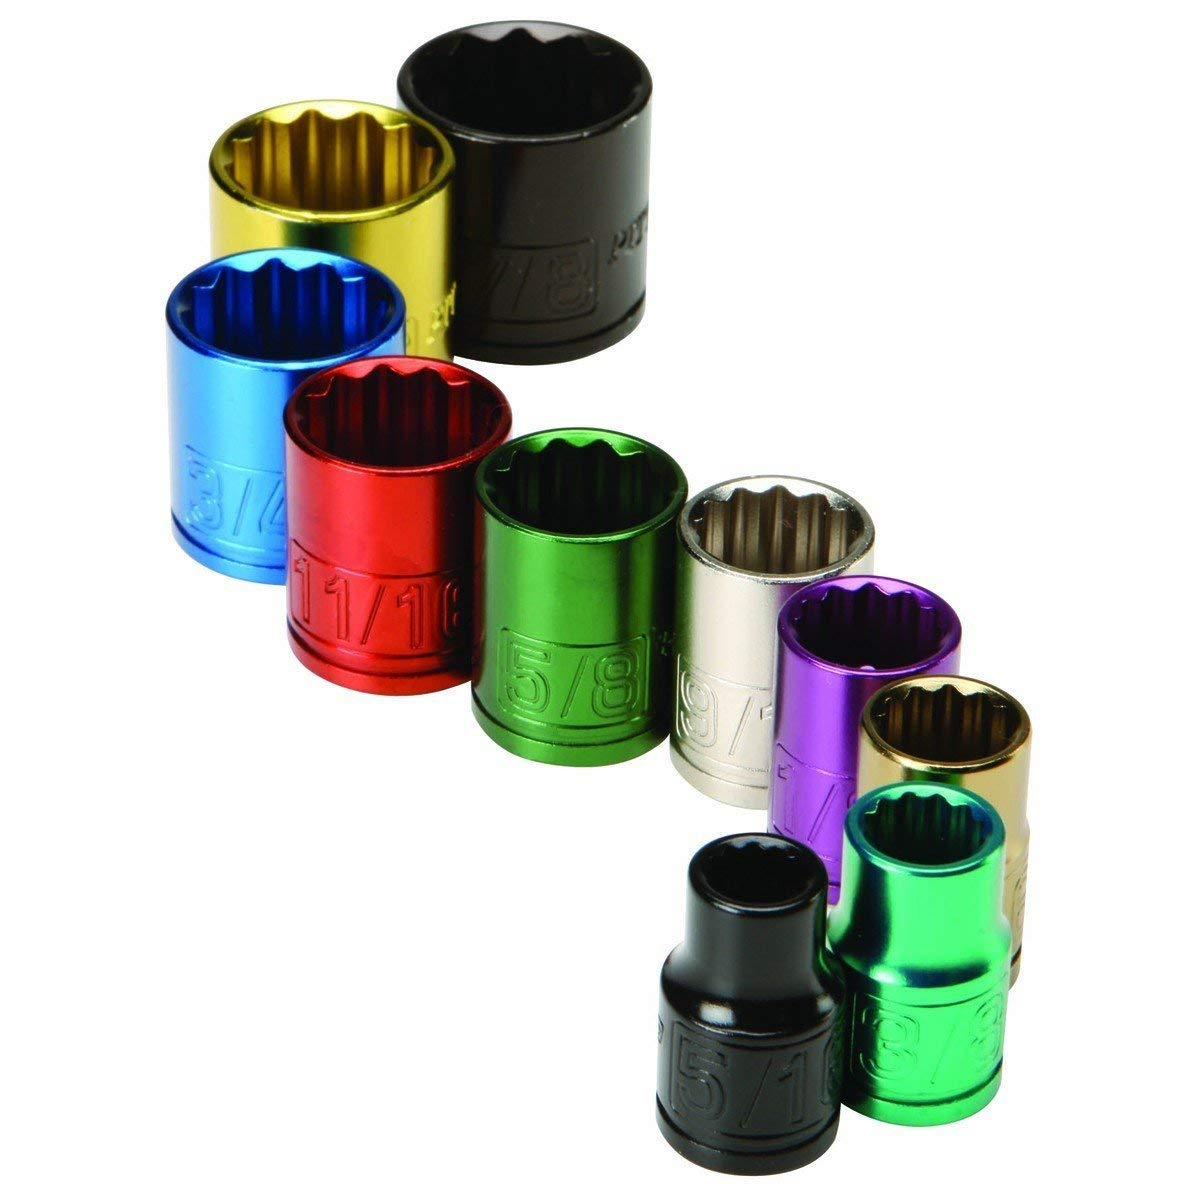 """""""ABC Products"""" - 10 Piece SAE ~ 3/8 Inch Drive - Shallow Well - Most Popular Size - Socket Set - Color Coded - For Easy Find (Sockets Sizes: 5/16 in, 3/8 in, 7/16 in, 1/2 in, 9/16 in, 5/8 in, 11/16 in, 3/4 in, 13/16 in, and 7/8 in)**"""